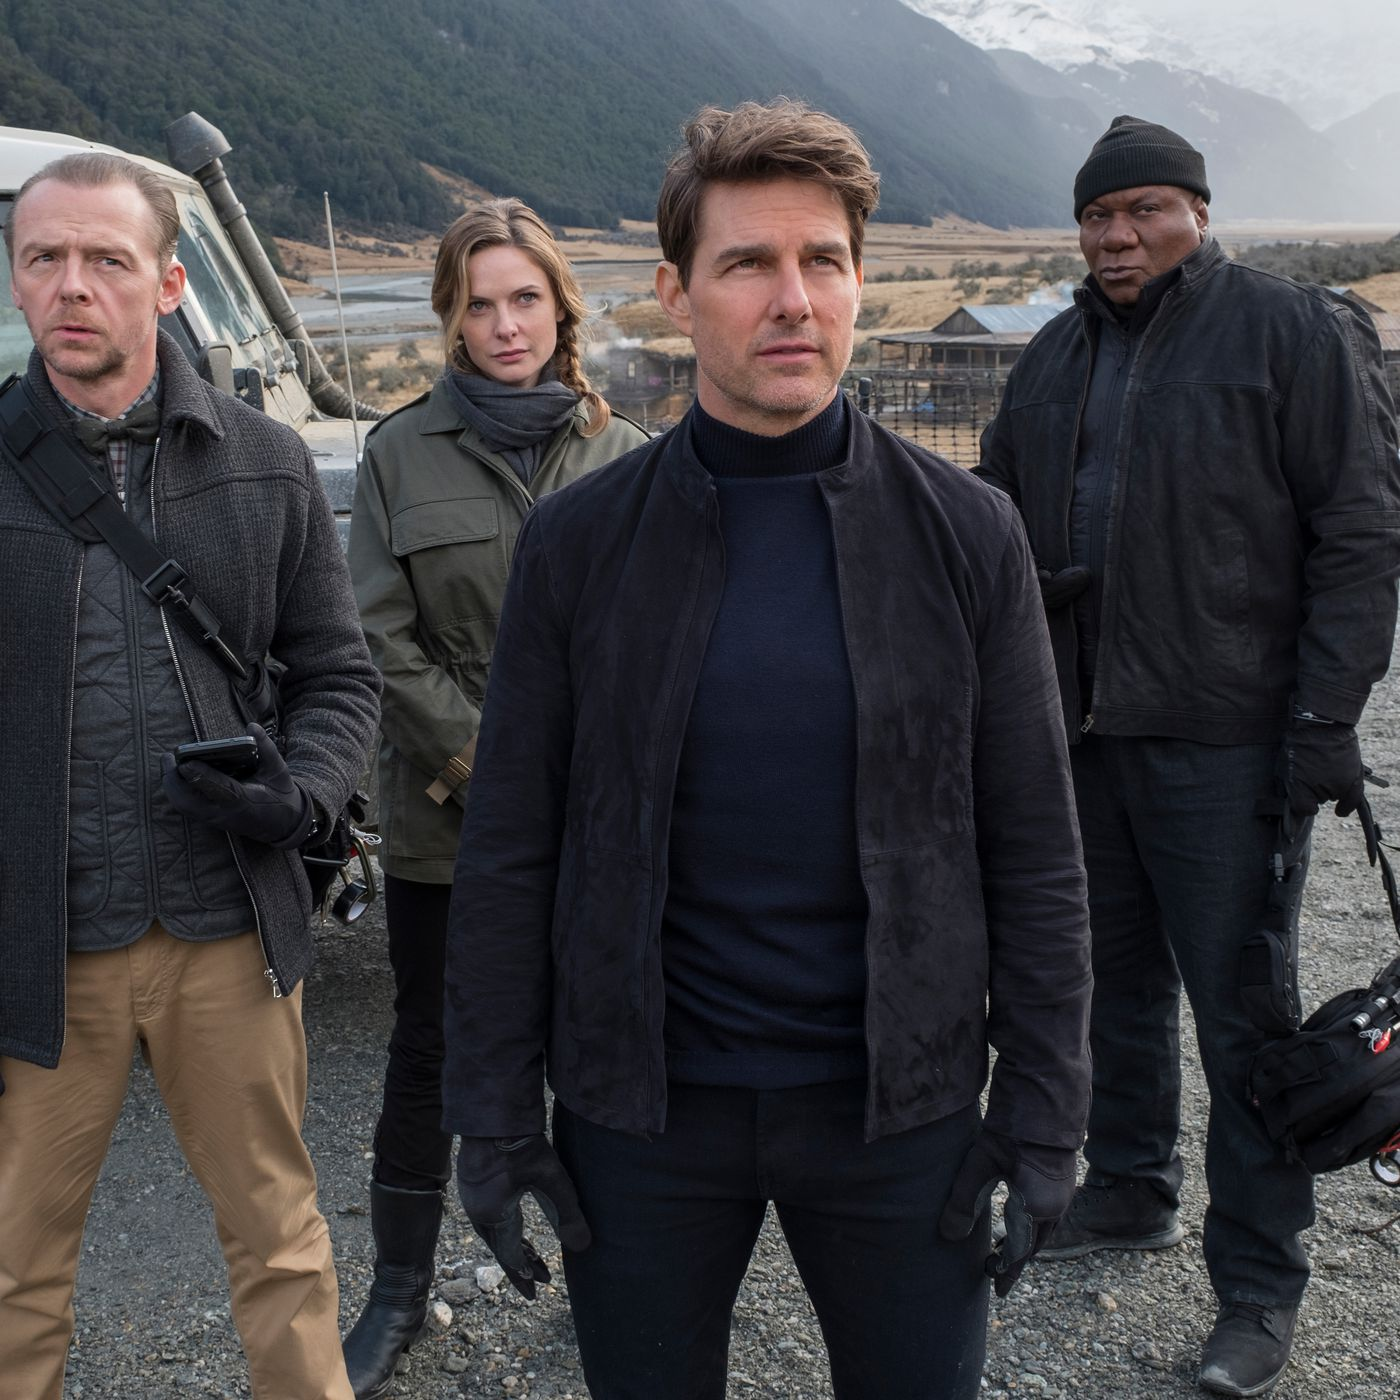 The Ending Of Mission Impossible Fallout Feels Like The Franchises Finale